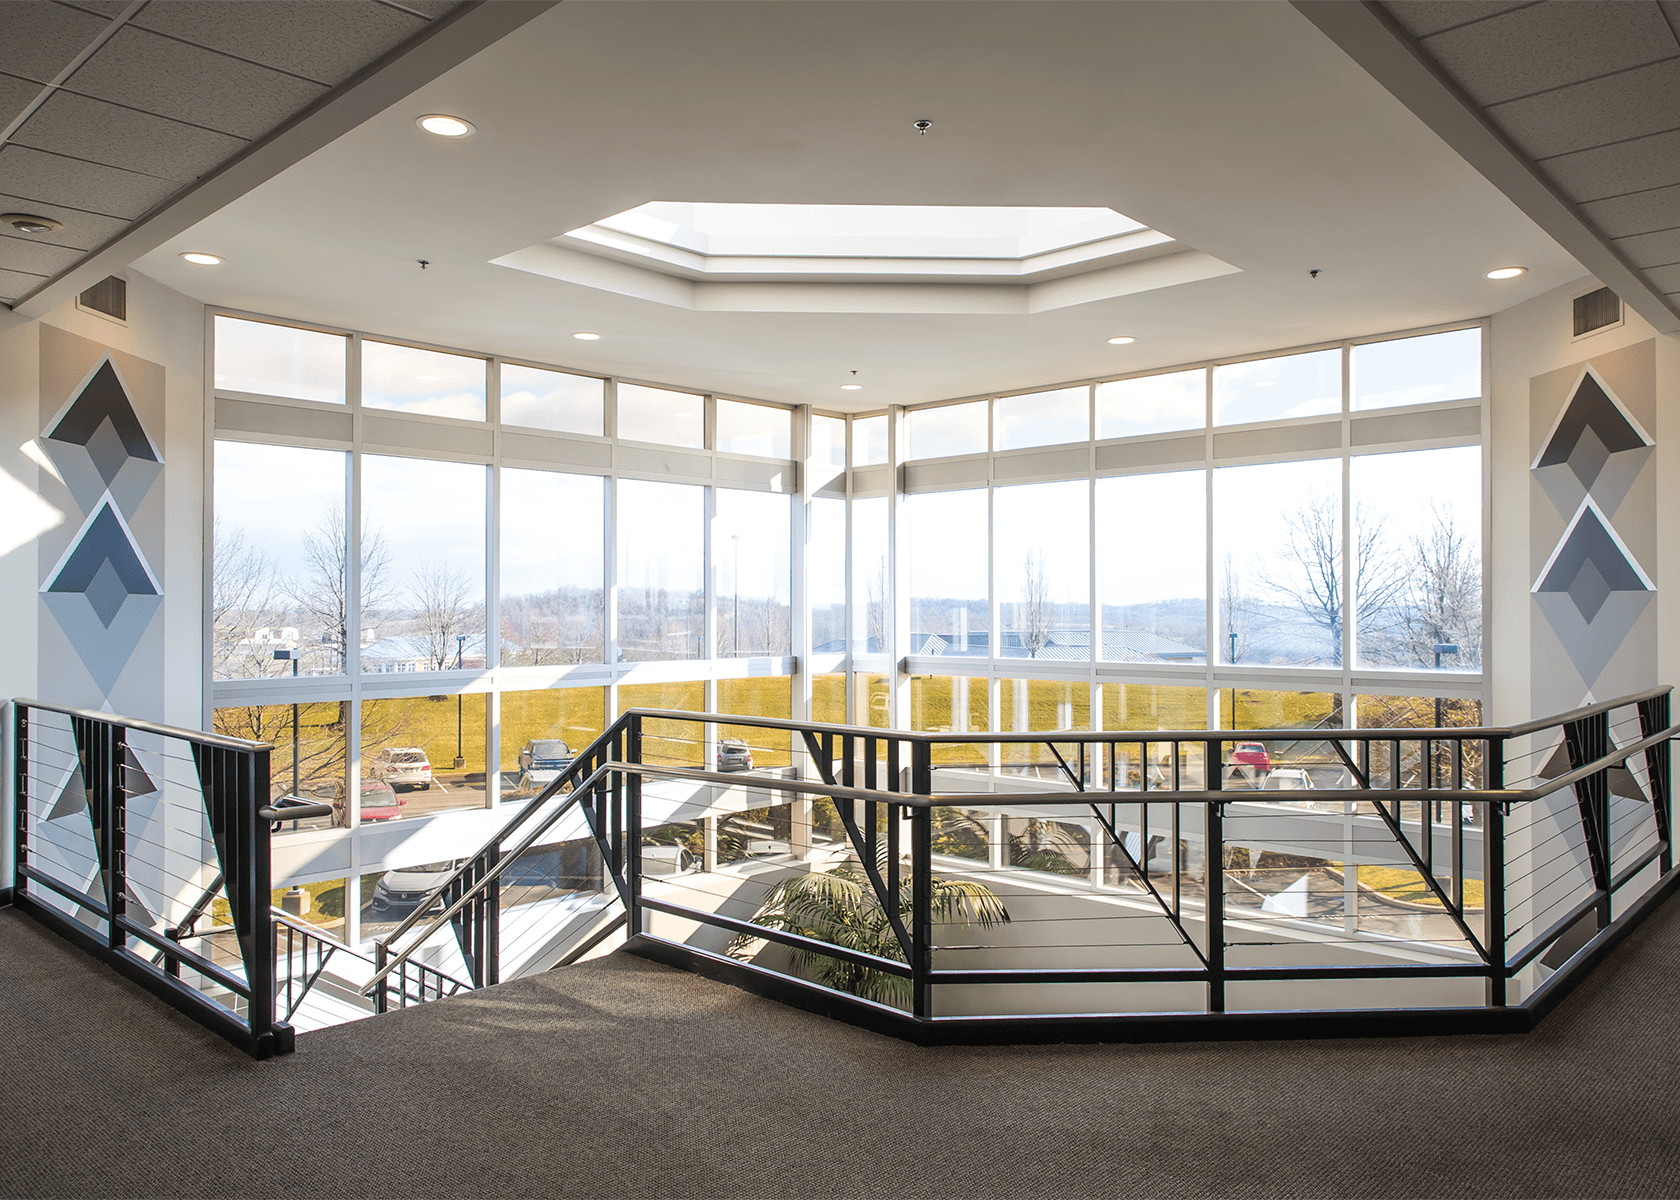 Stealth technology center interior multi-level lobby with large windows